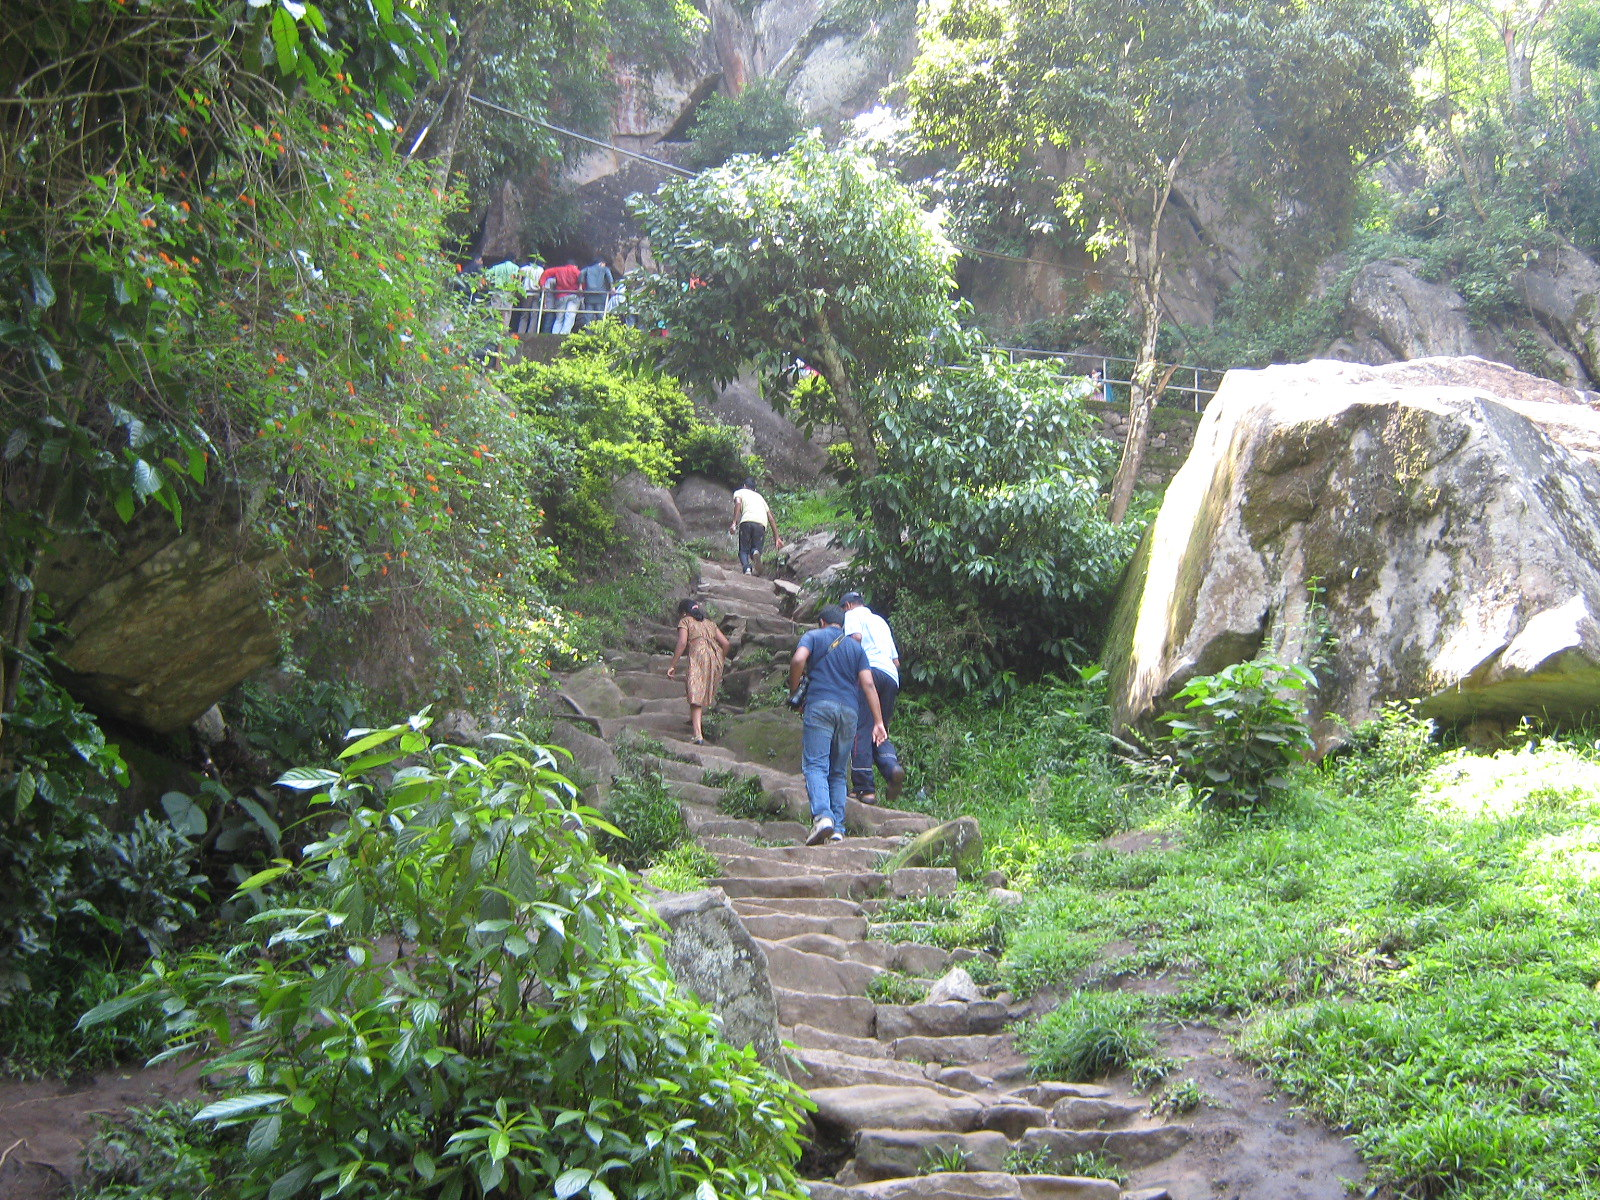 Top Place Near Rivers and Lakes in Kerala-Wayanad